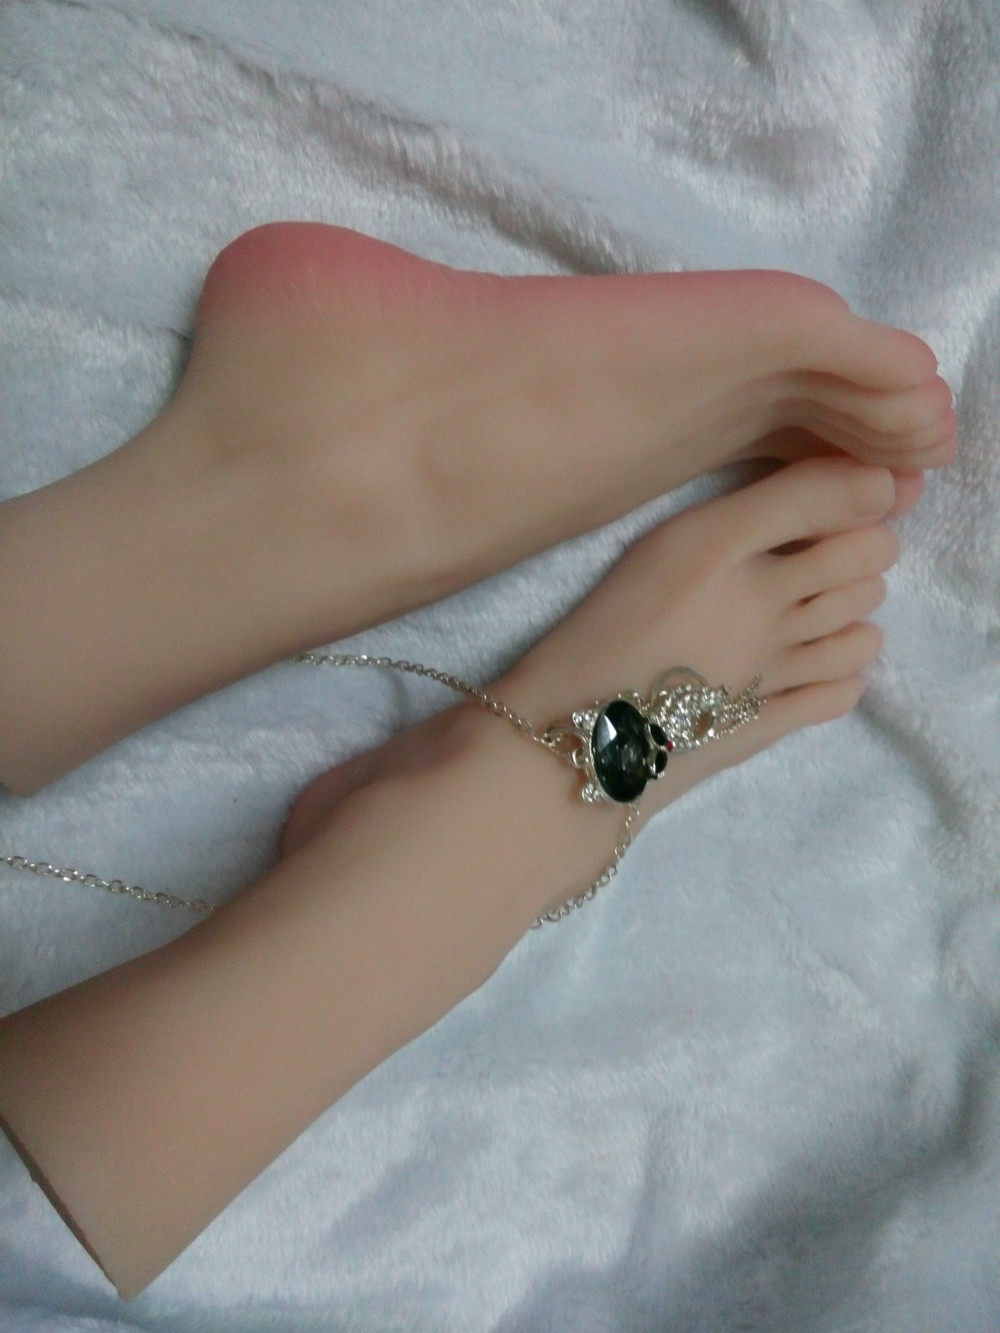 new copy girls ballerina dancer gymnast foot feet replica pointed toes fetish toys tanning skin pink toenails soles игрушечное оружие яигрушка игрушечный деревянный кинжал